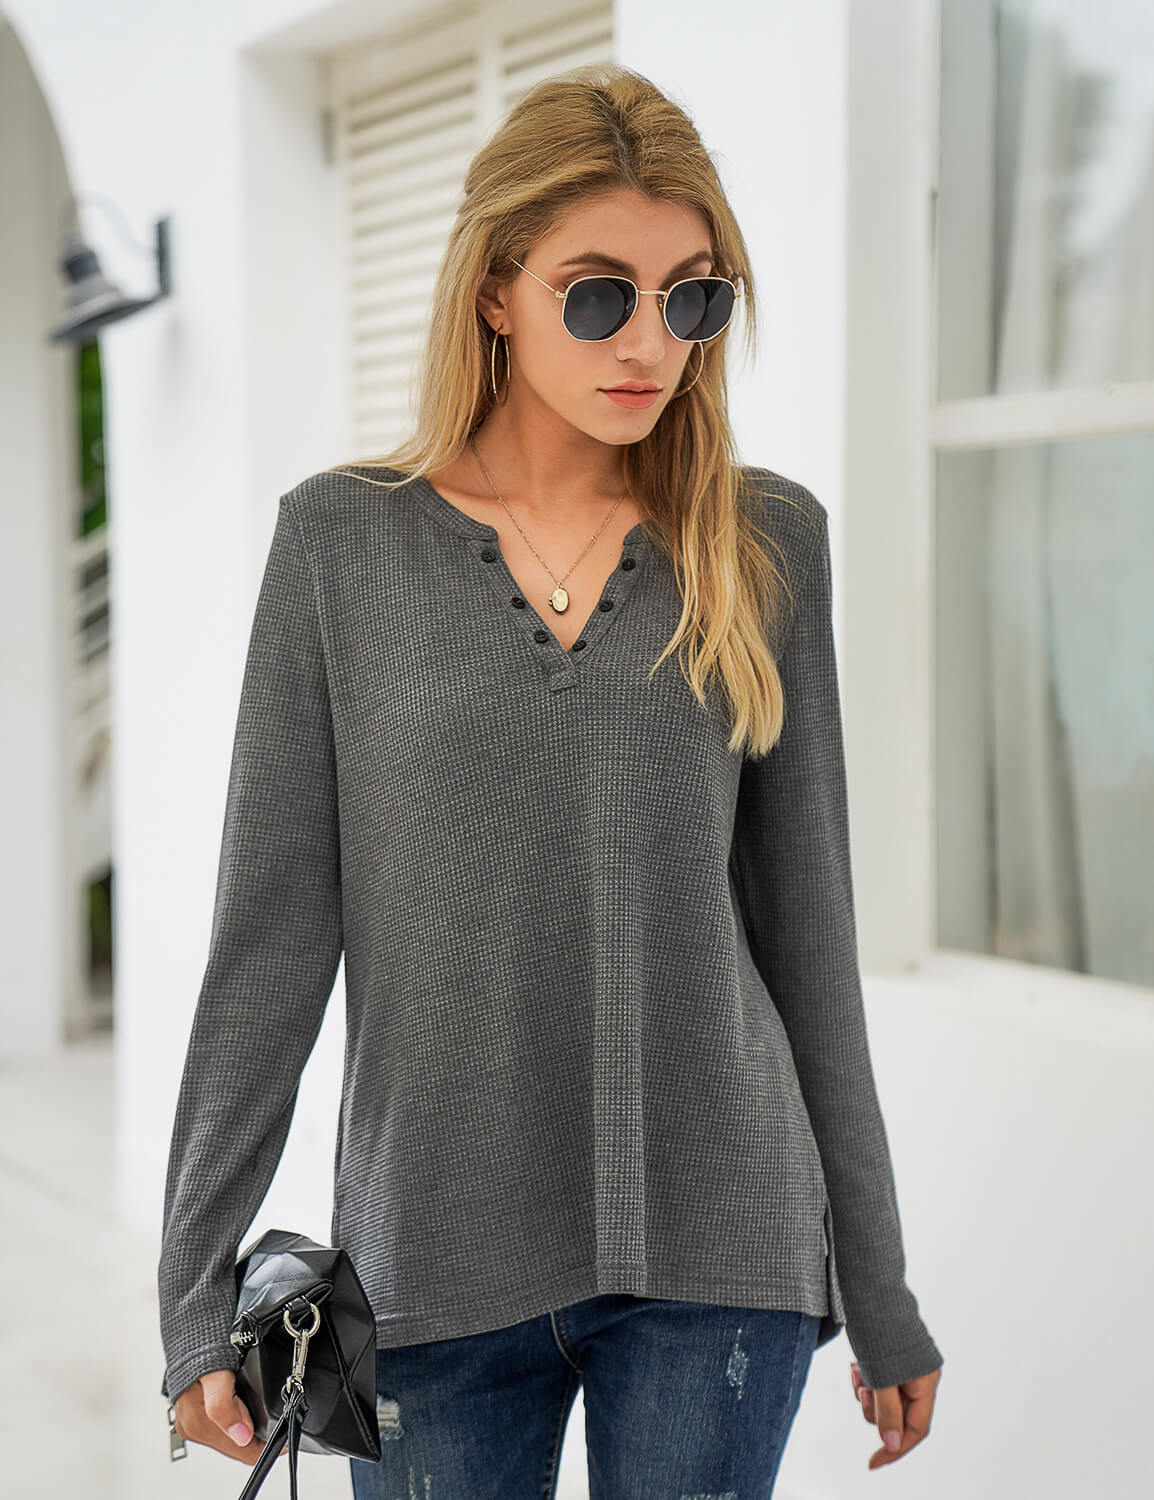 Blooming Jelly_Knitted High Low Long Sleeve T-Shirt_Gray_294021_07_Fall Fashion Women's Outfits_Tops_T-Shirt